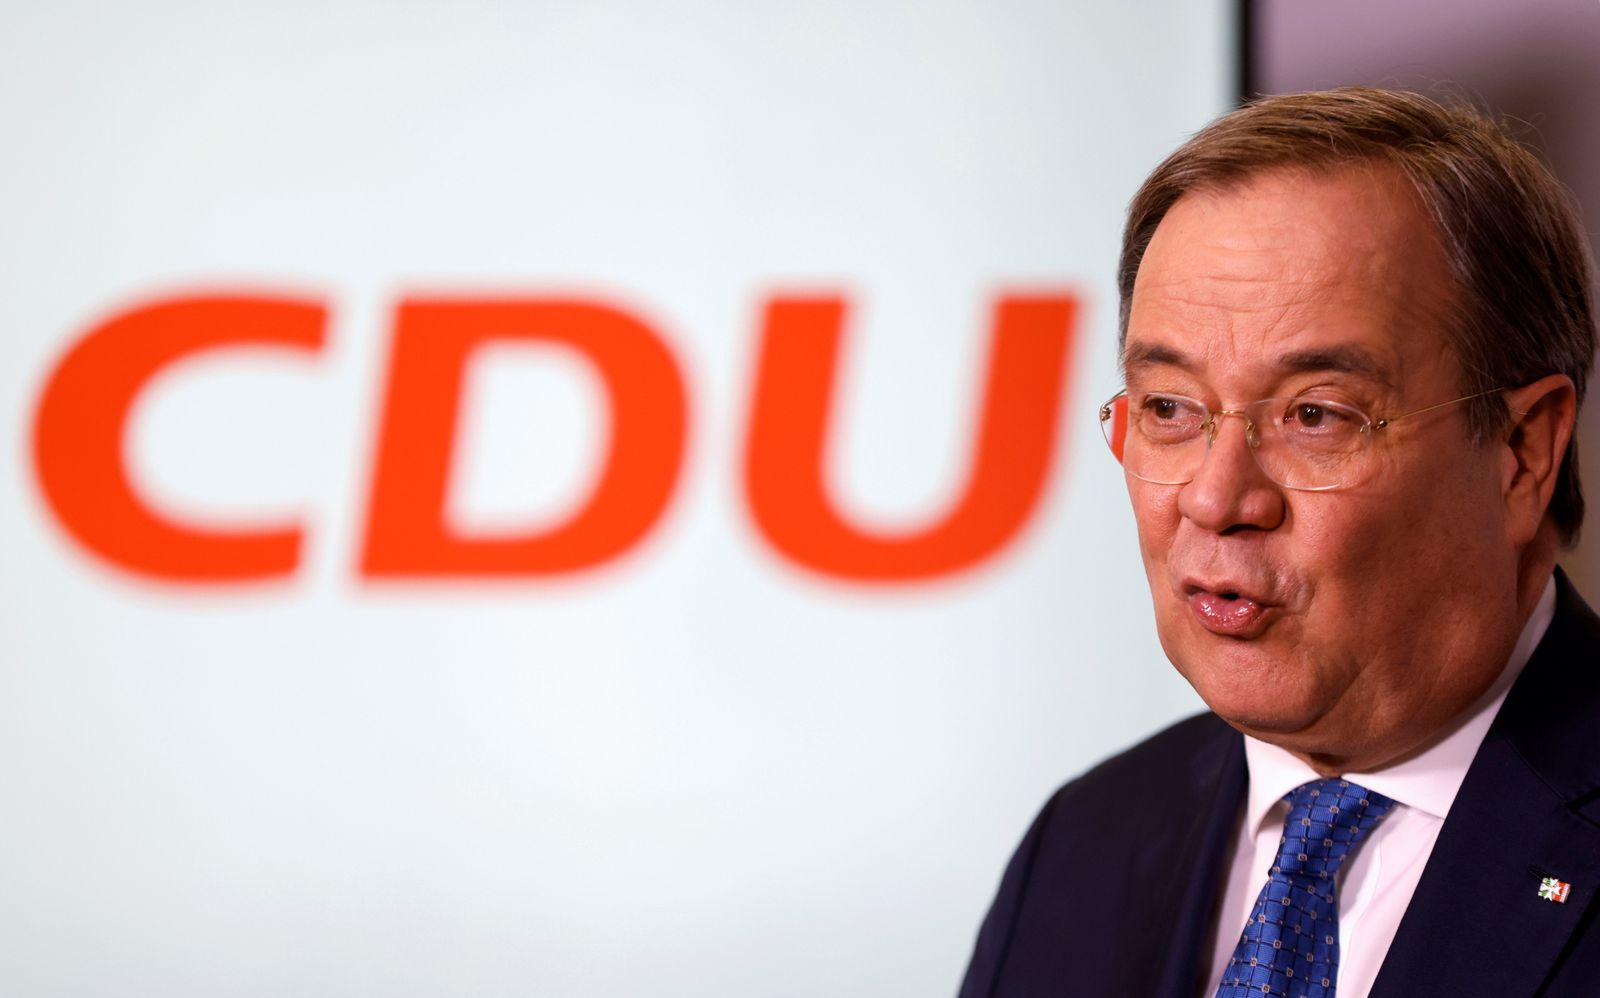 North Rhine-Westphalia's State Premier and new leader of the Christian Democratic Union (CDU) Armin Laschet speaks during a news conference at the CDU headquarters in Berlin